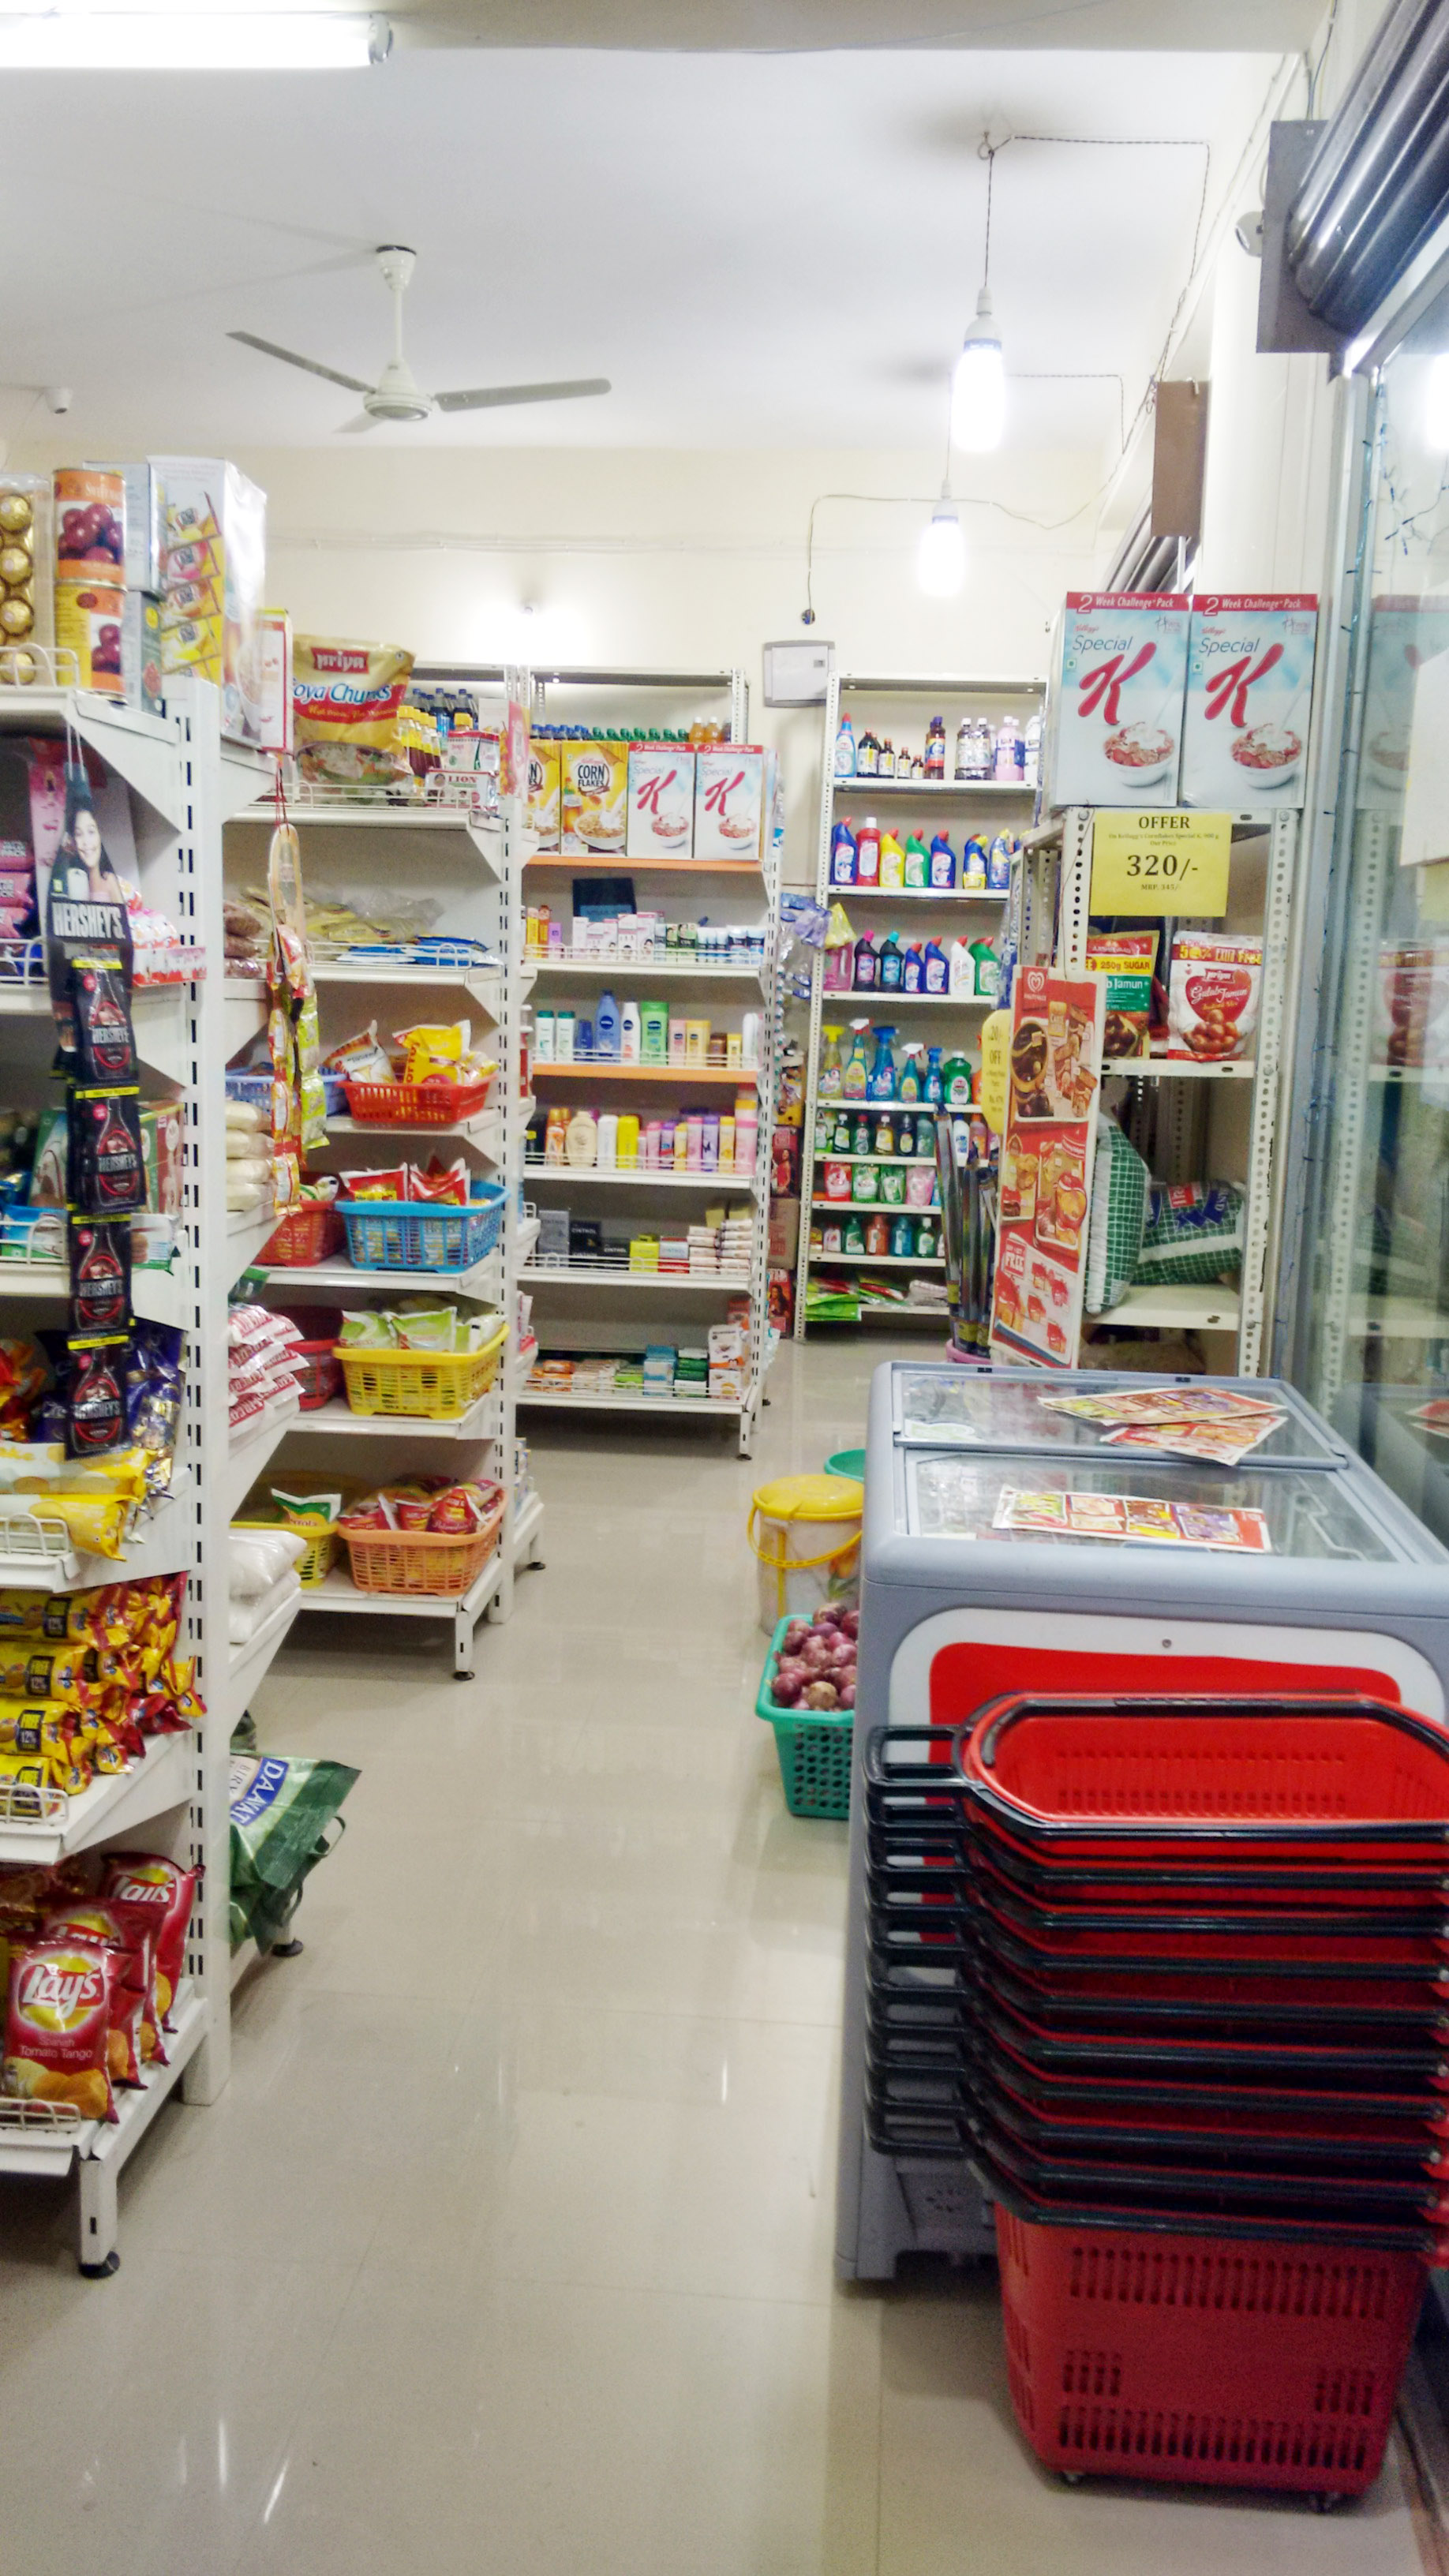 SuperMarket / Grocery Store Business Plan